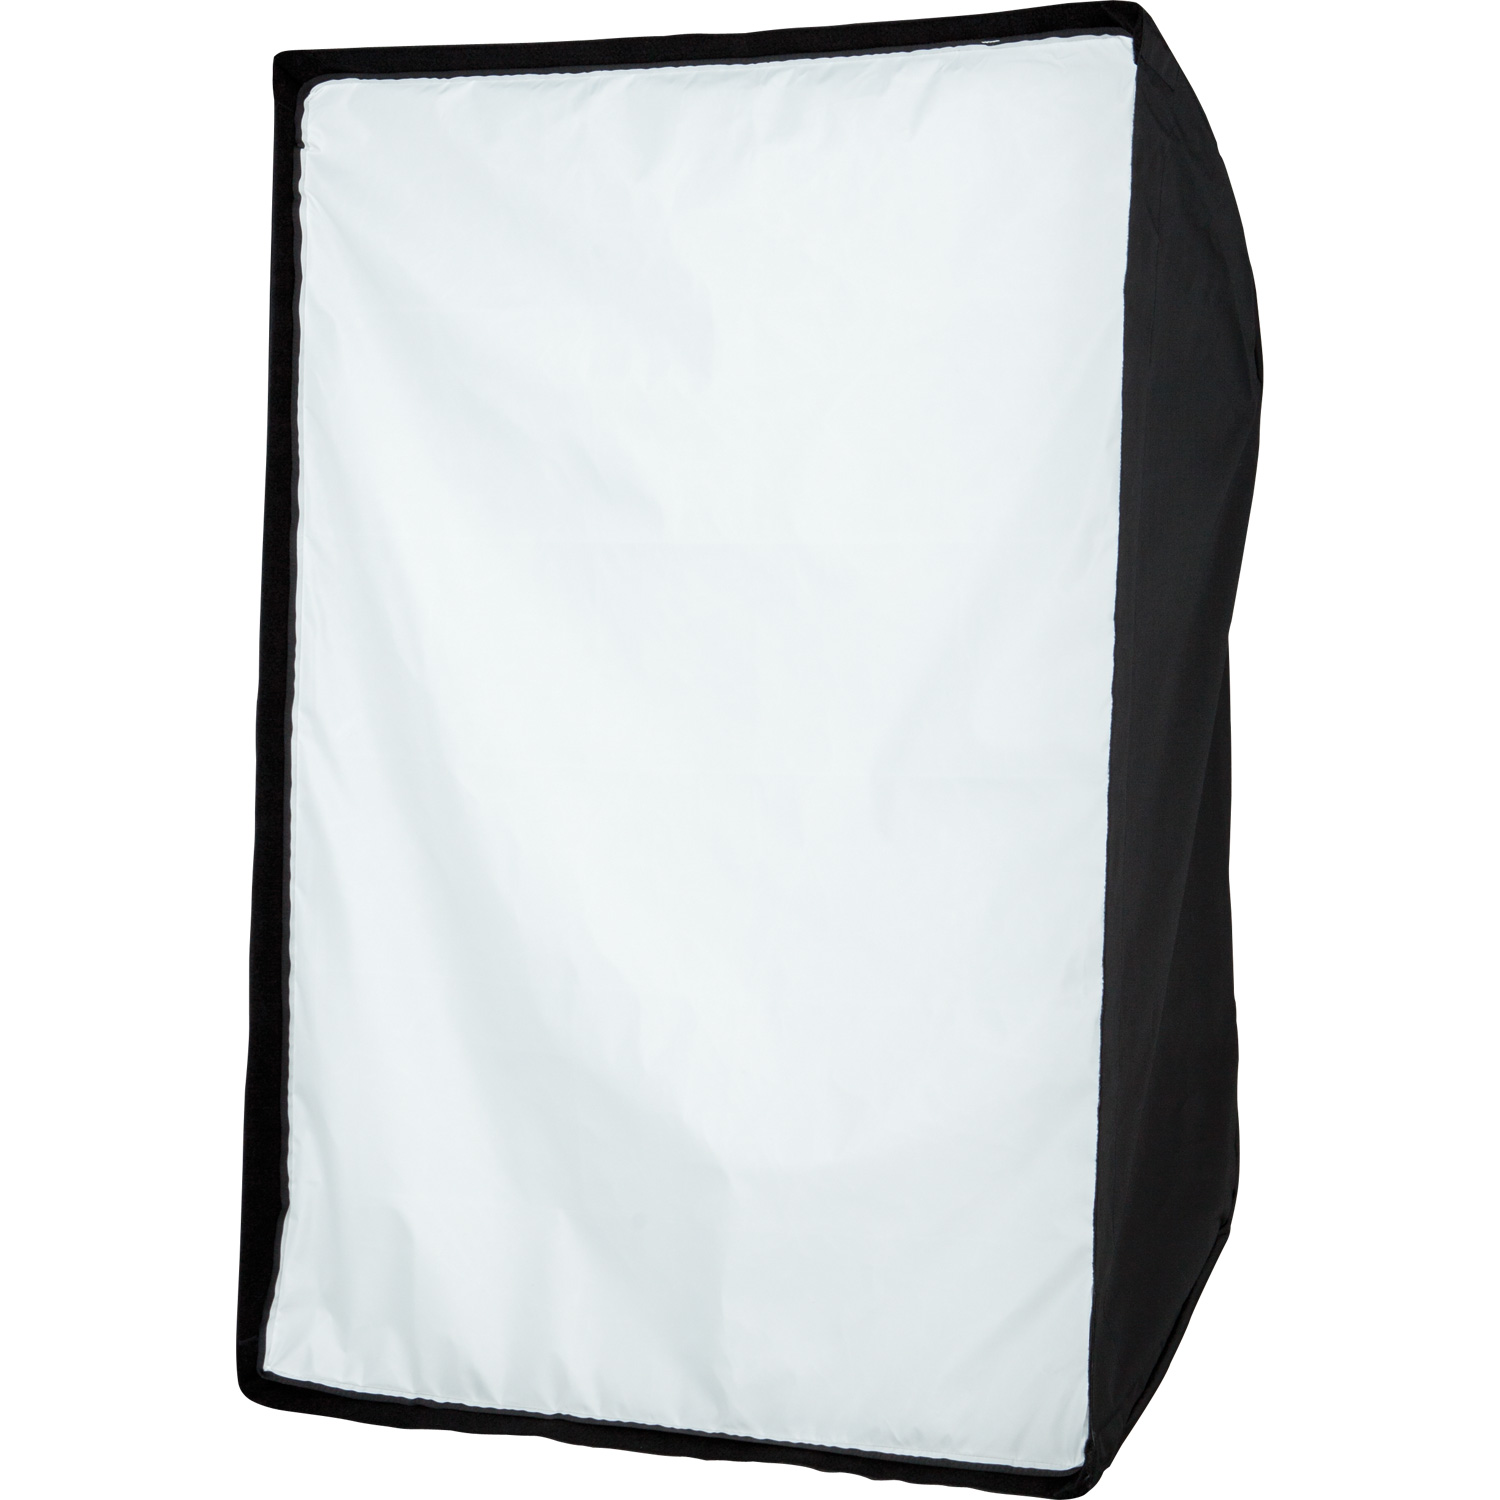 36-in. x 48-in. Pro Signature Softbox, White Interior